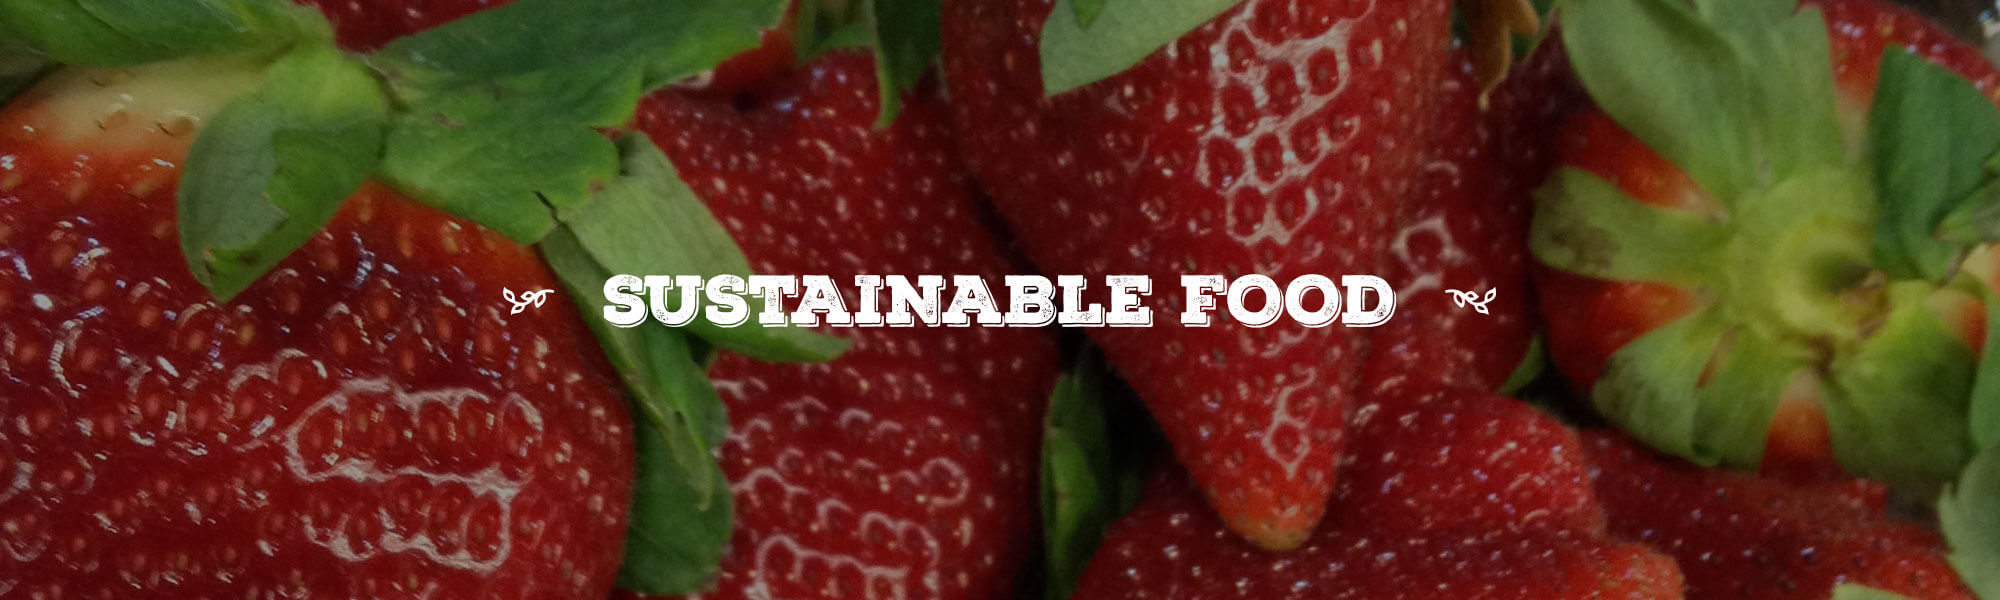 Sustainable Food overlay on close up photo of red strawberries